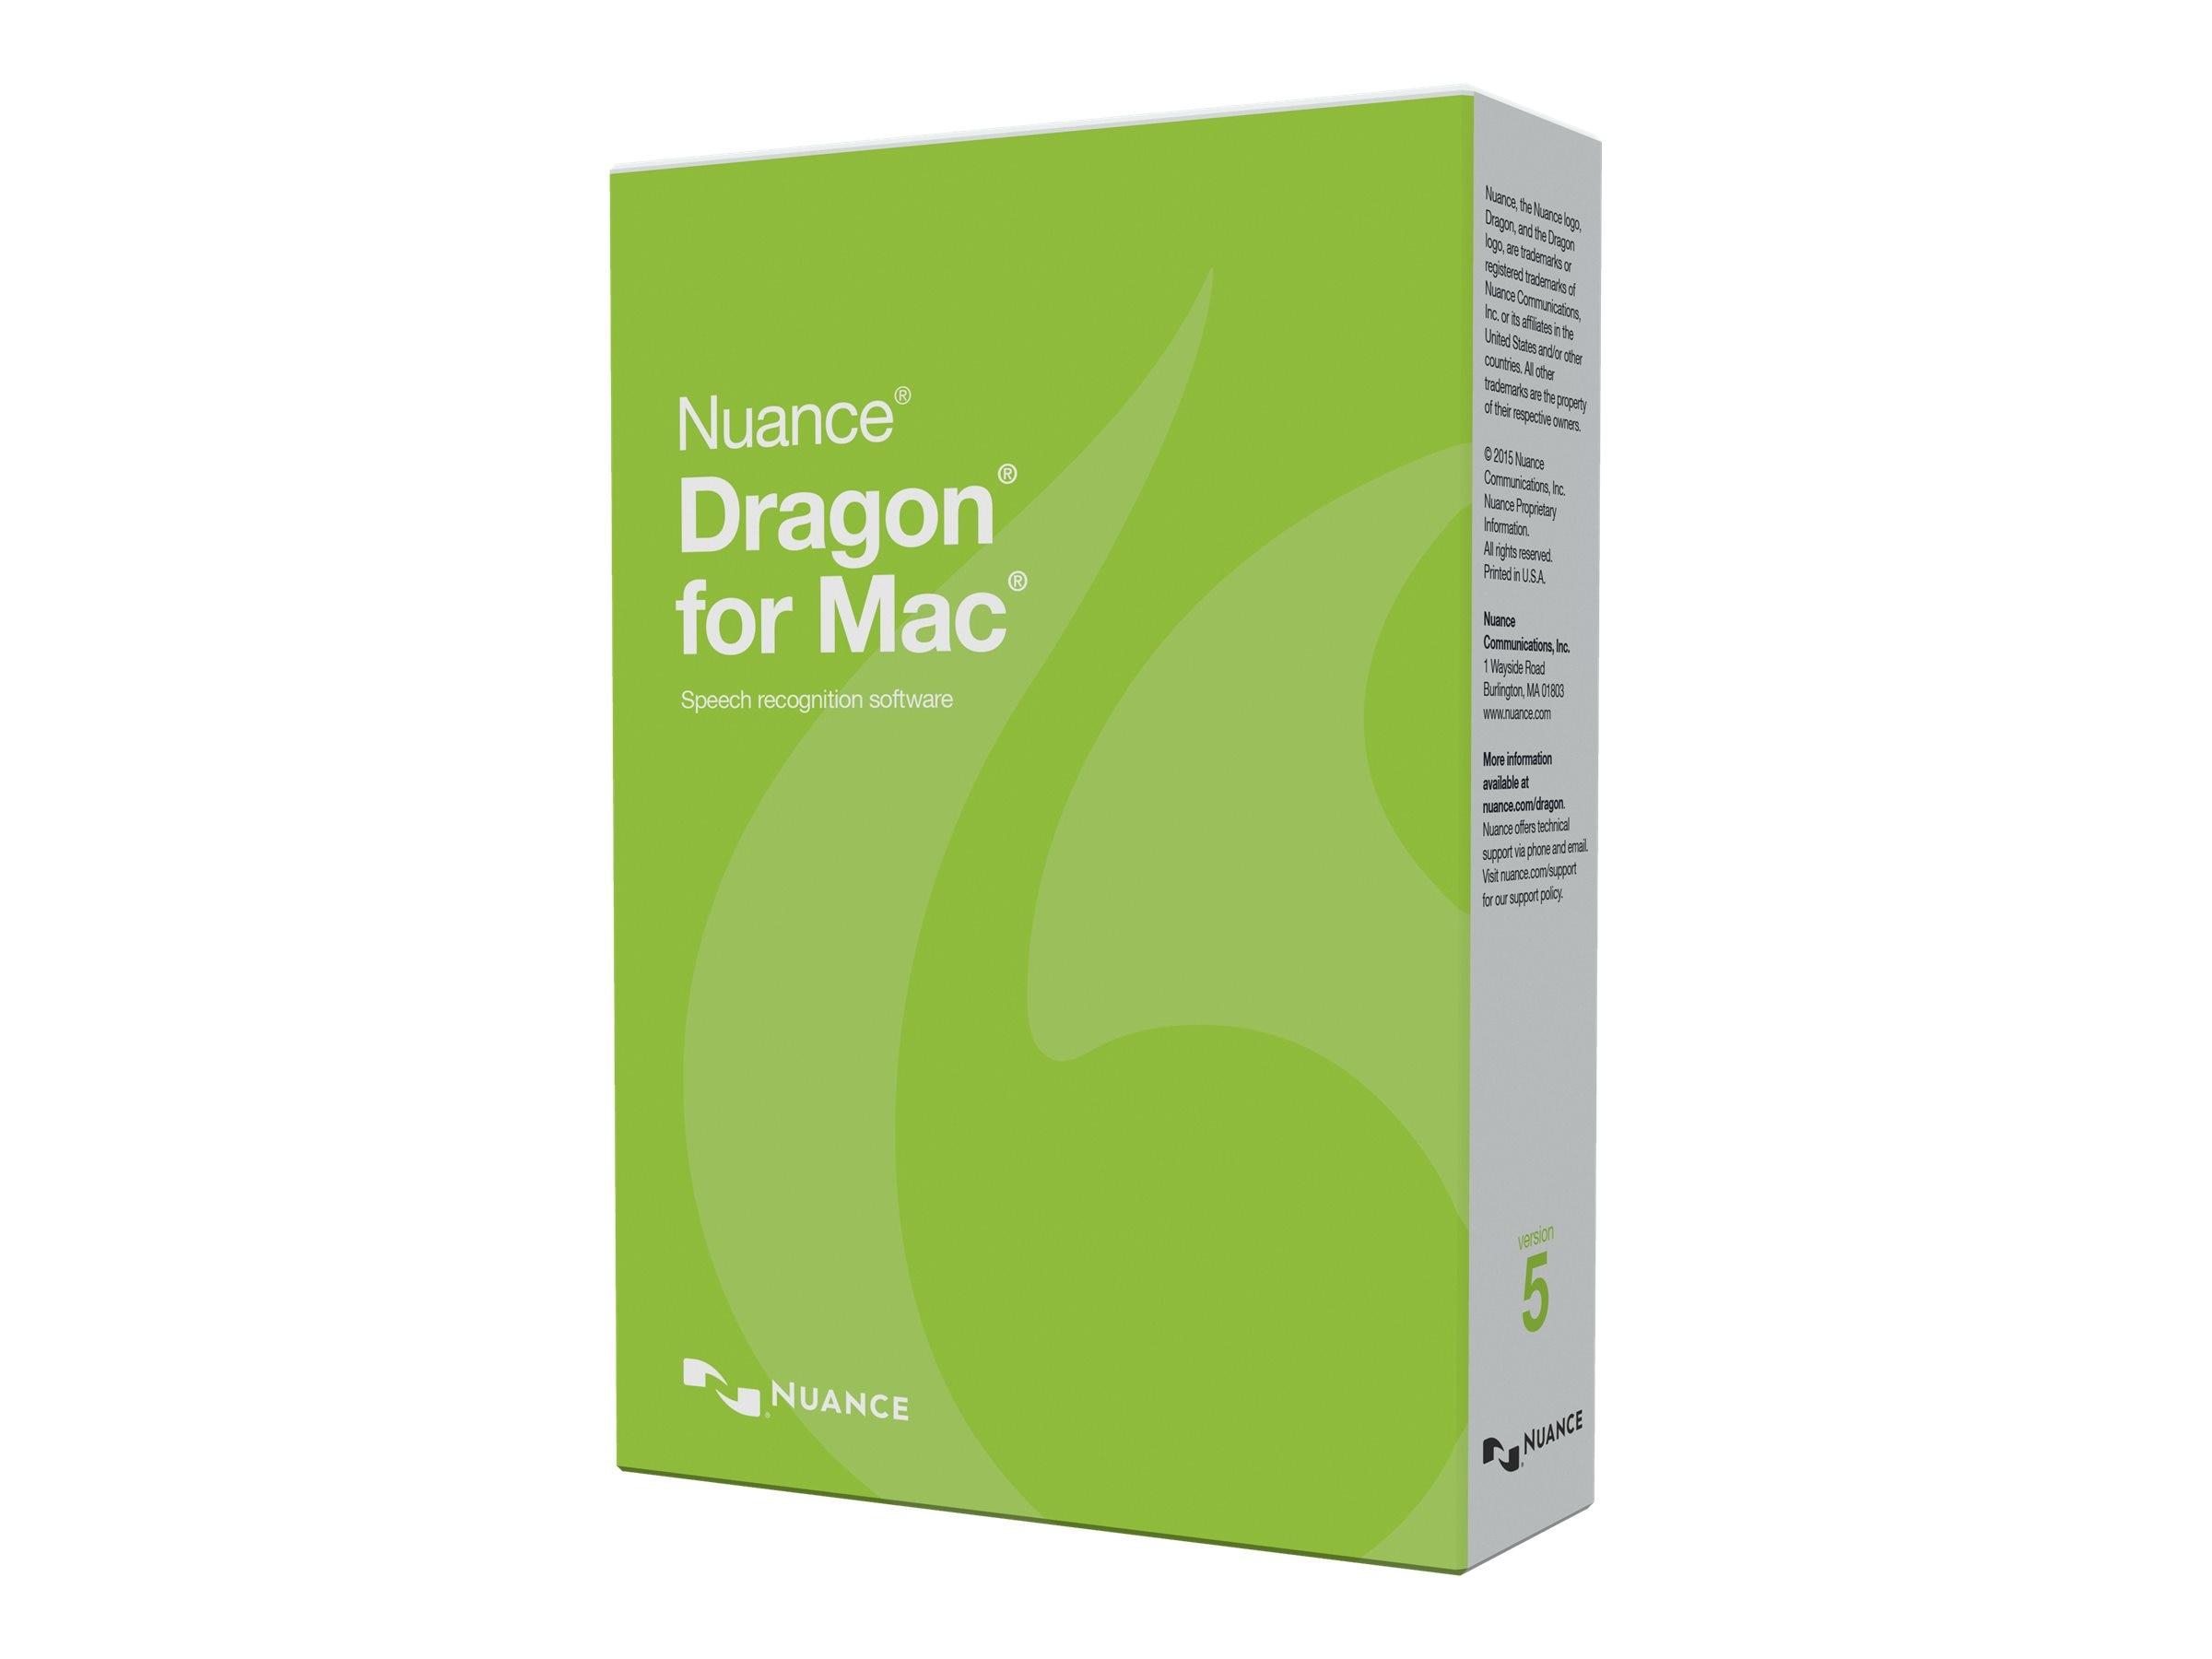 Nuance ACAD ENG DRAGON FOR MAC 5.0    DVD ONLINE VALIDATION PROGRAM, S601A-F02-5.0, 31127961, Software - Voice Recognition